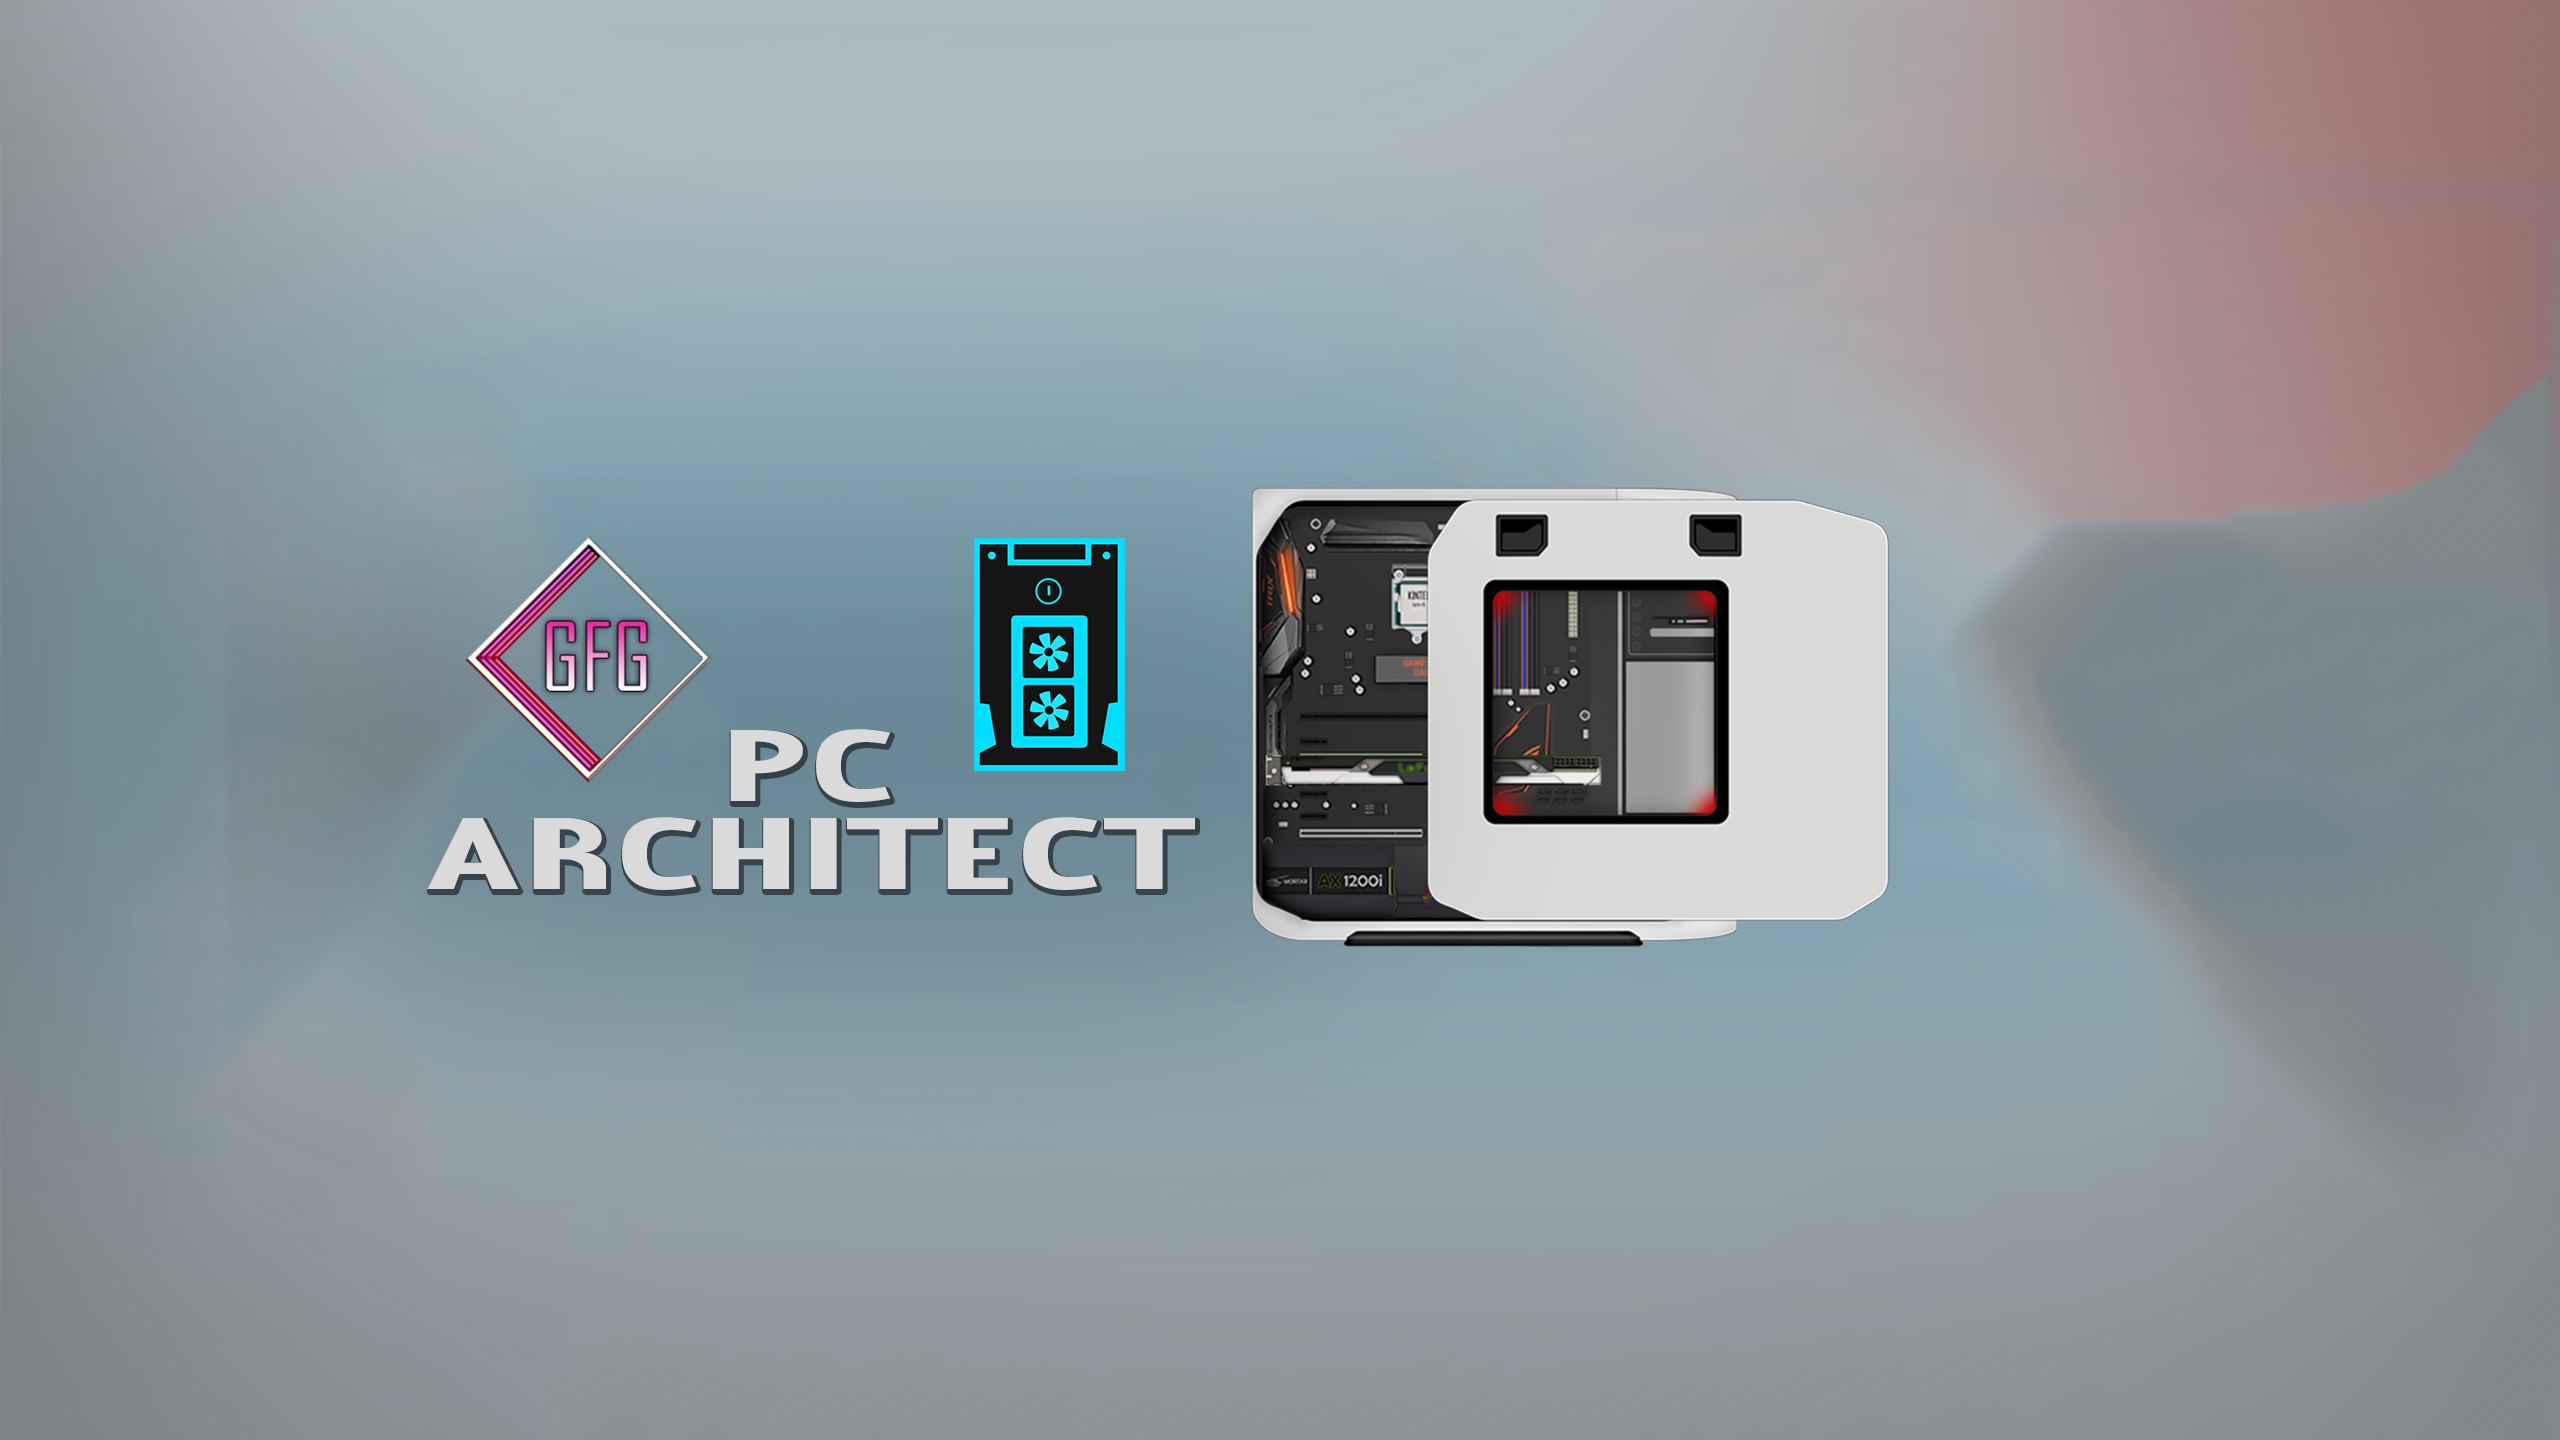 PC Architect